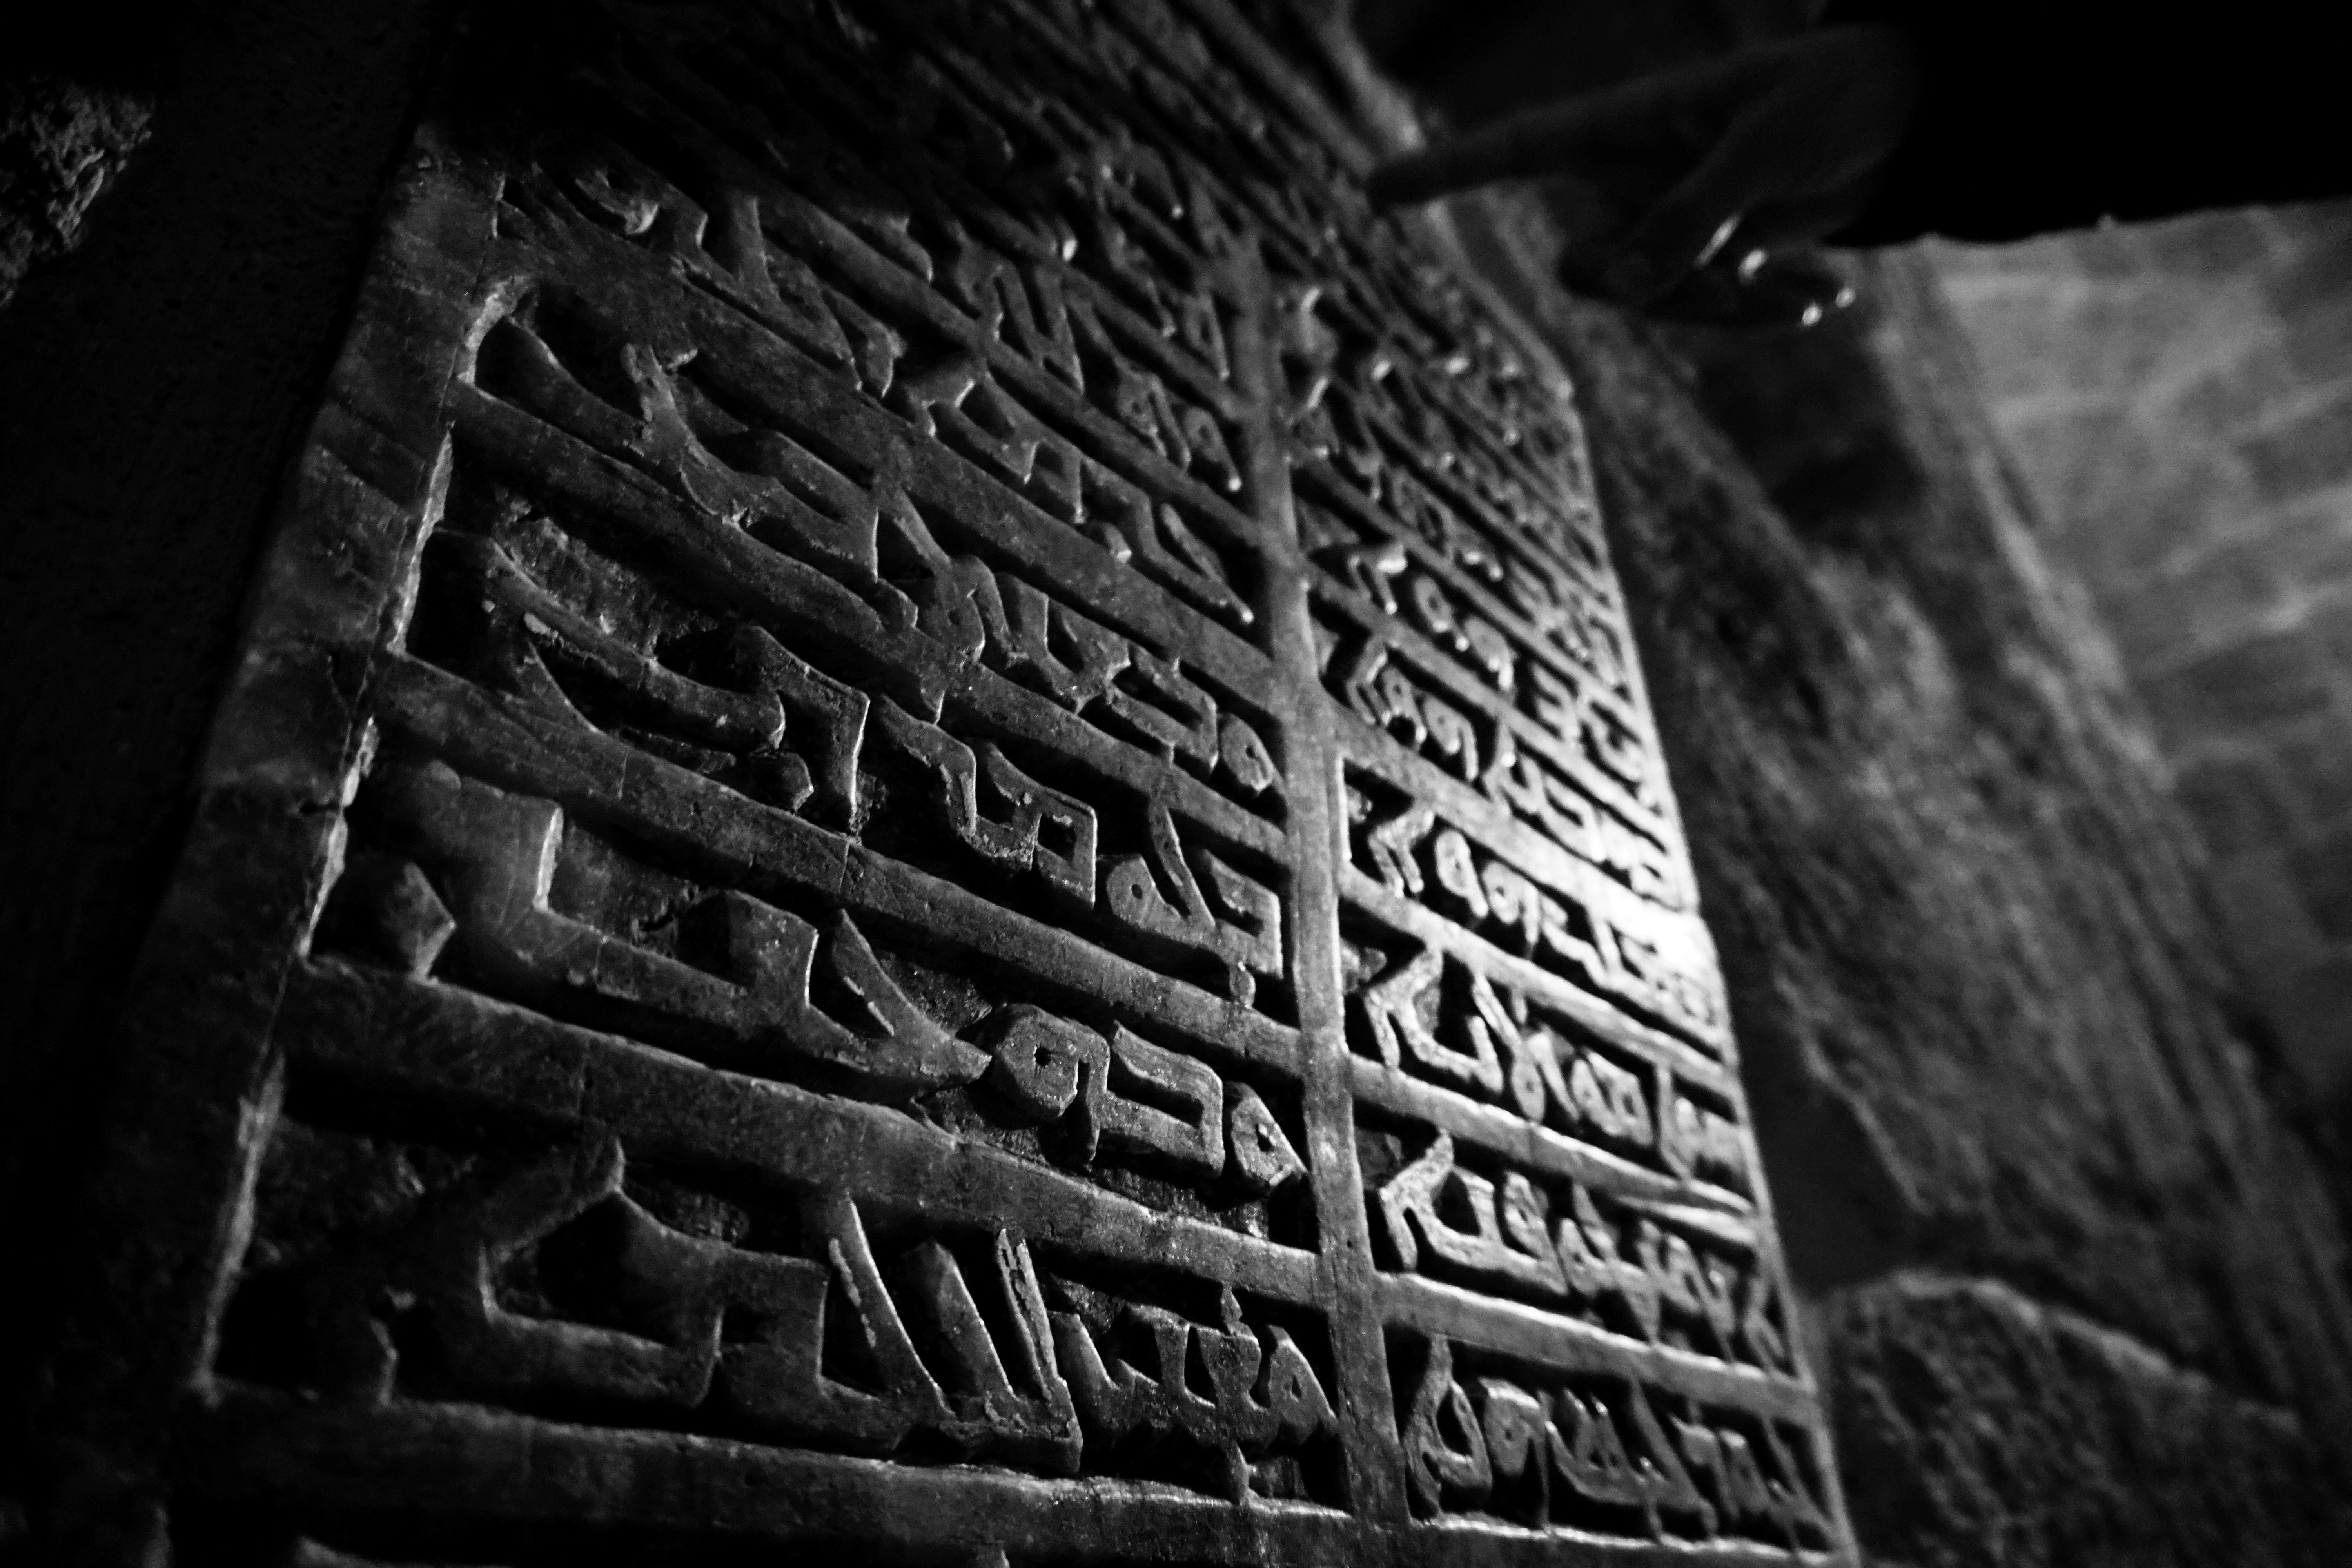 Syriac text inscribed on the door of the monastery from the 5th century